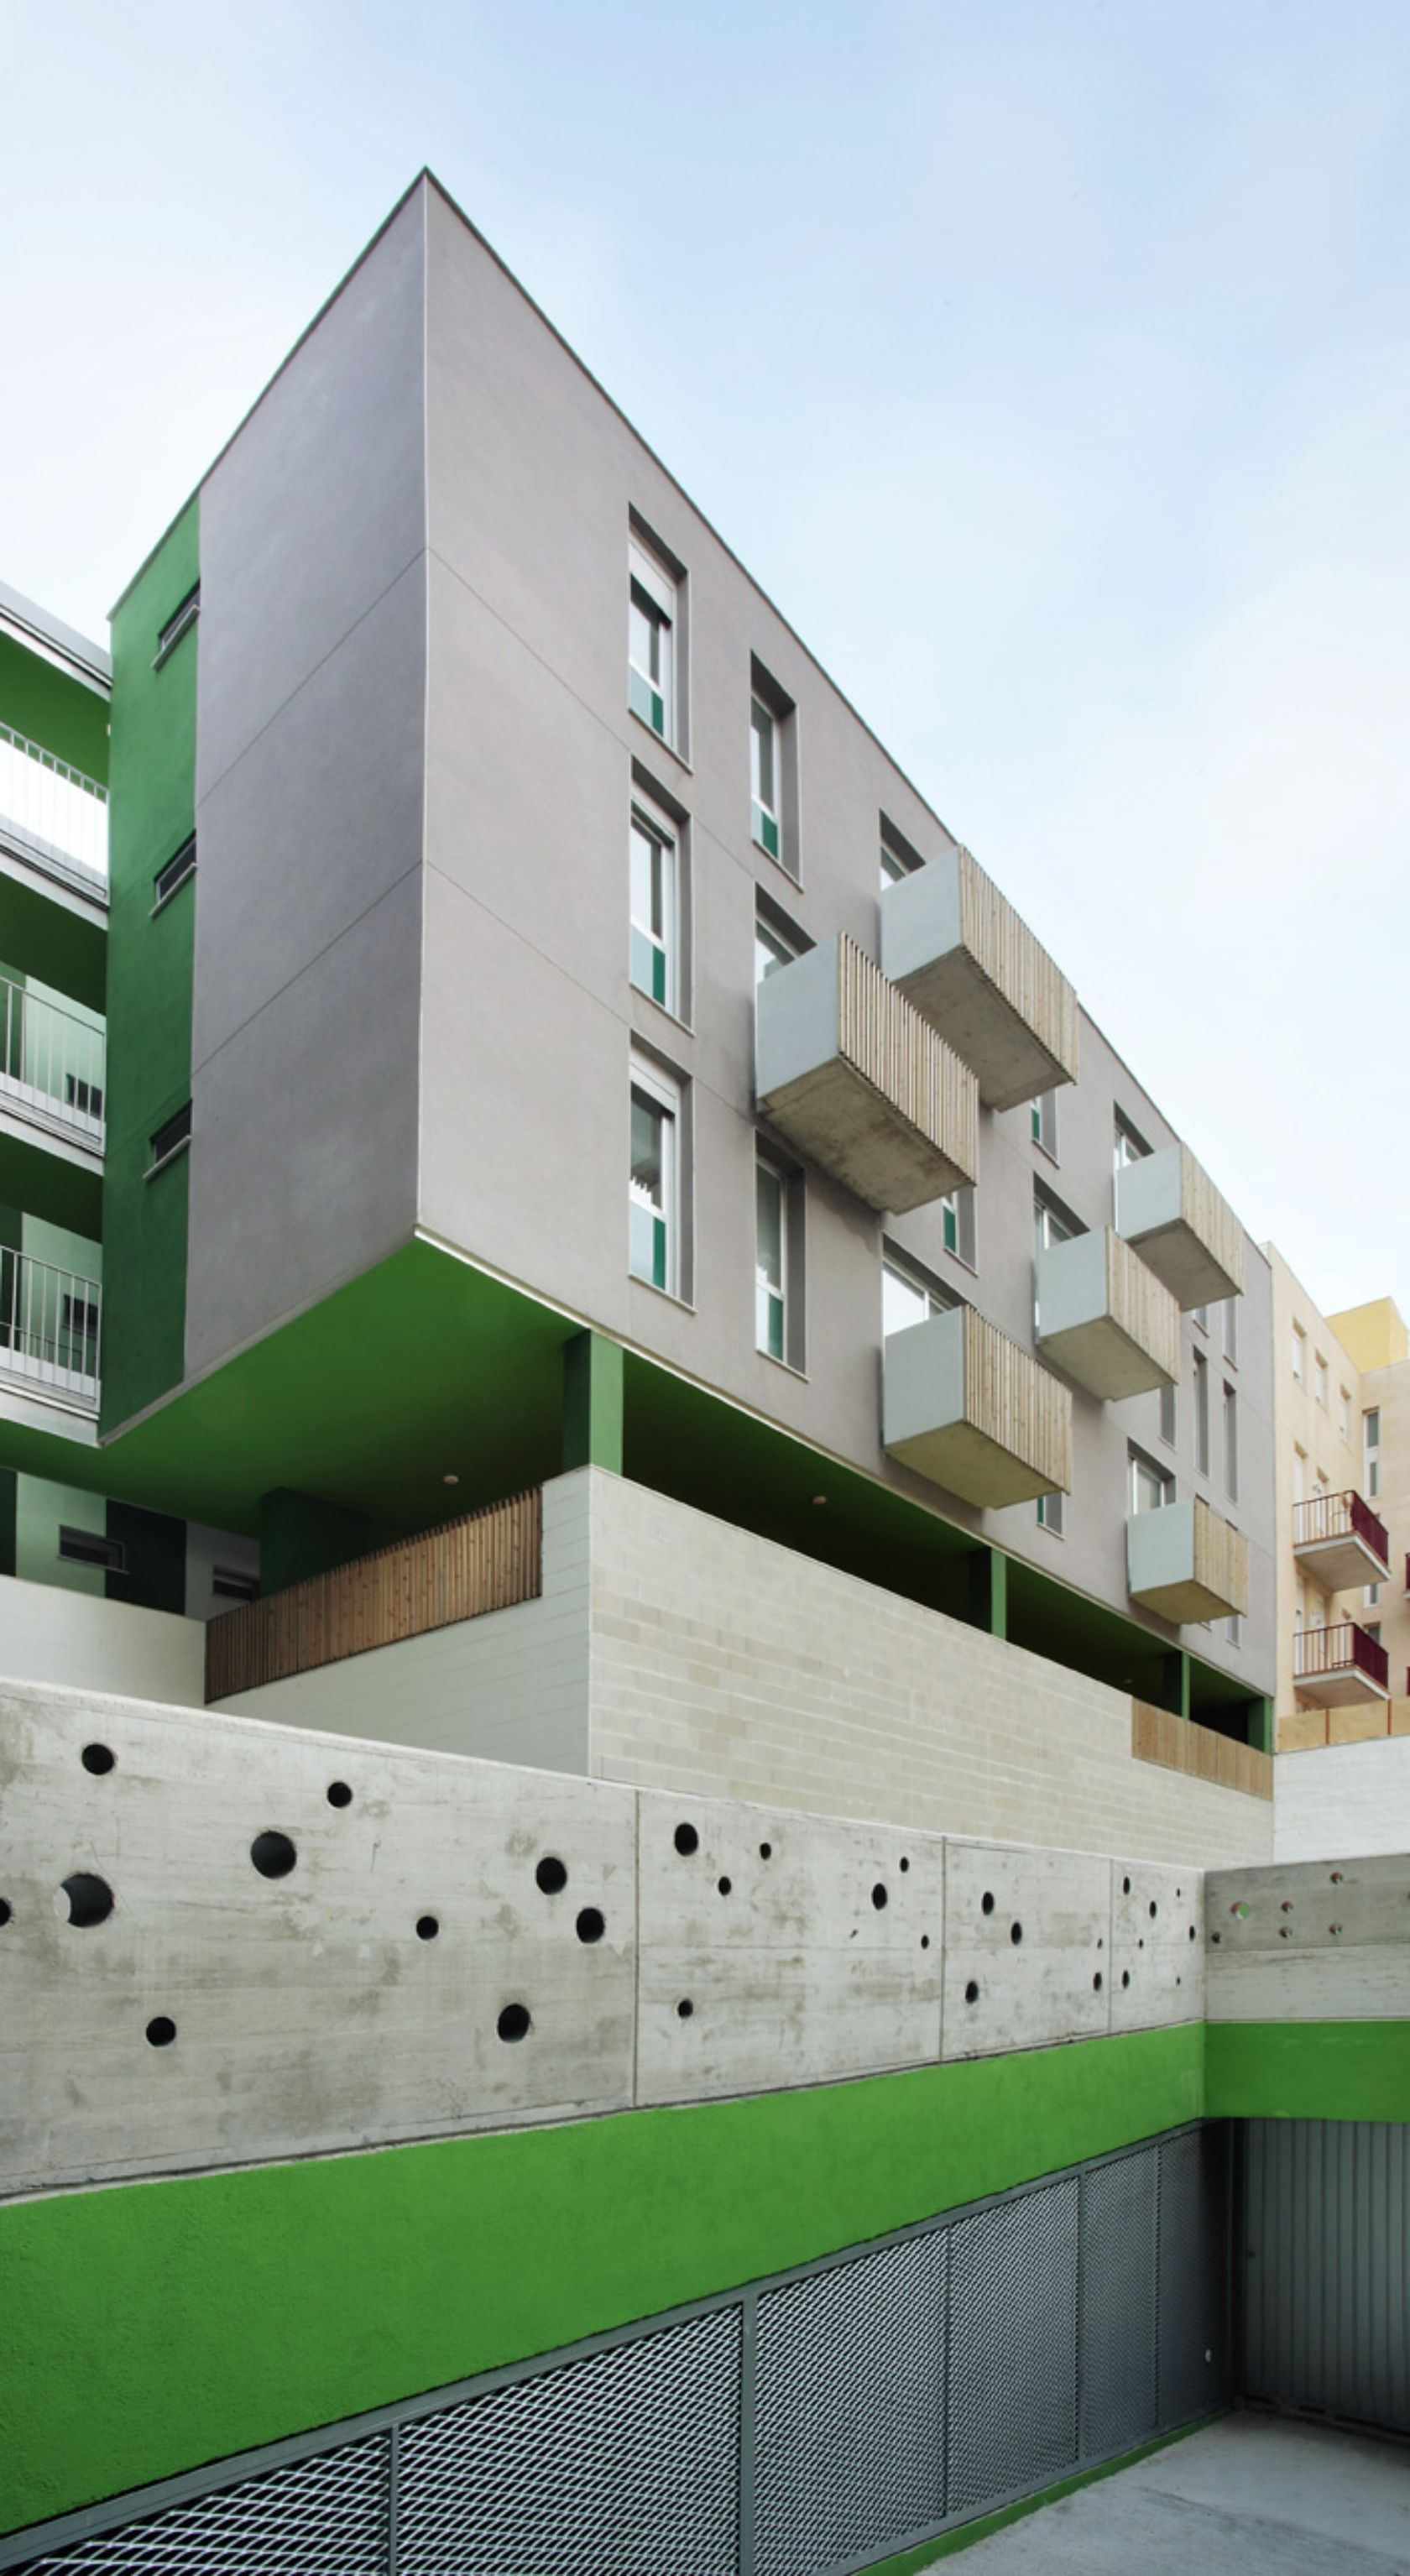 25 social housing for young people menorca spain by - Flexo arquitectura ...